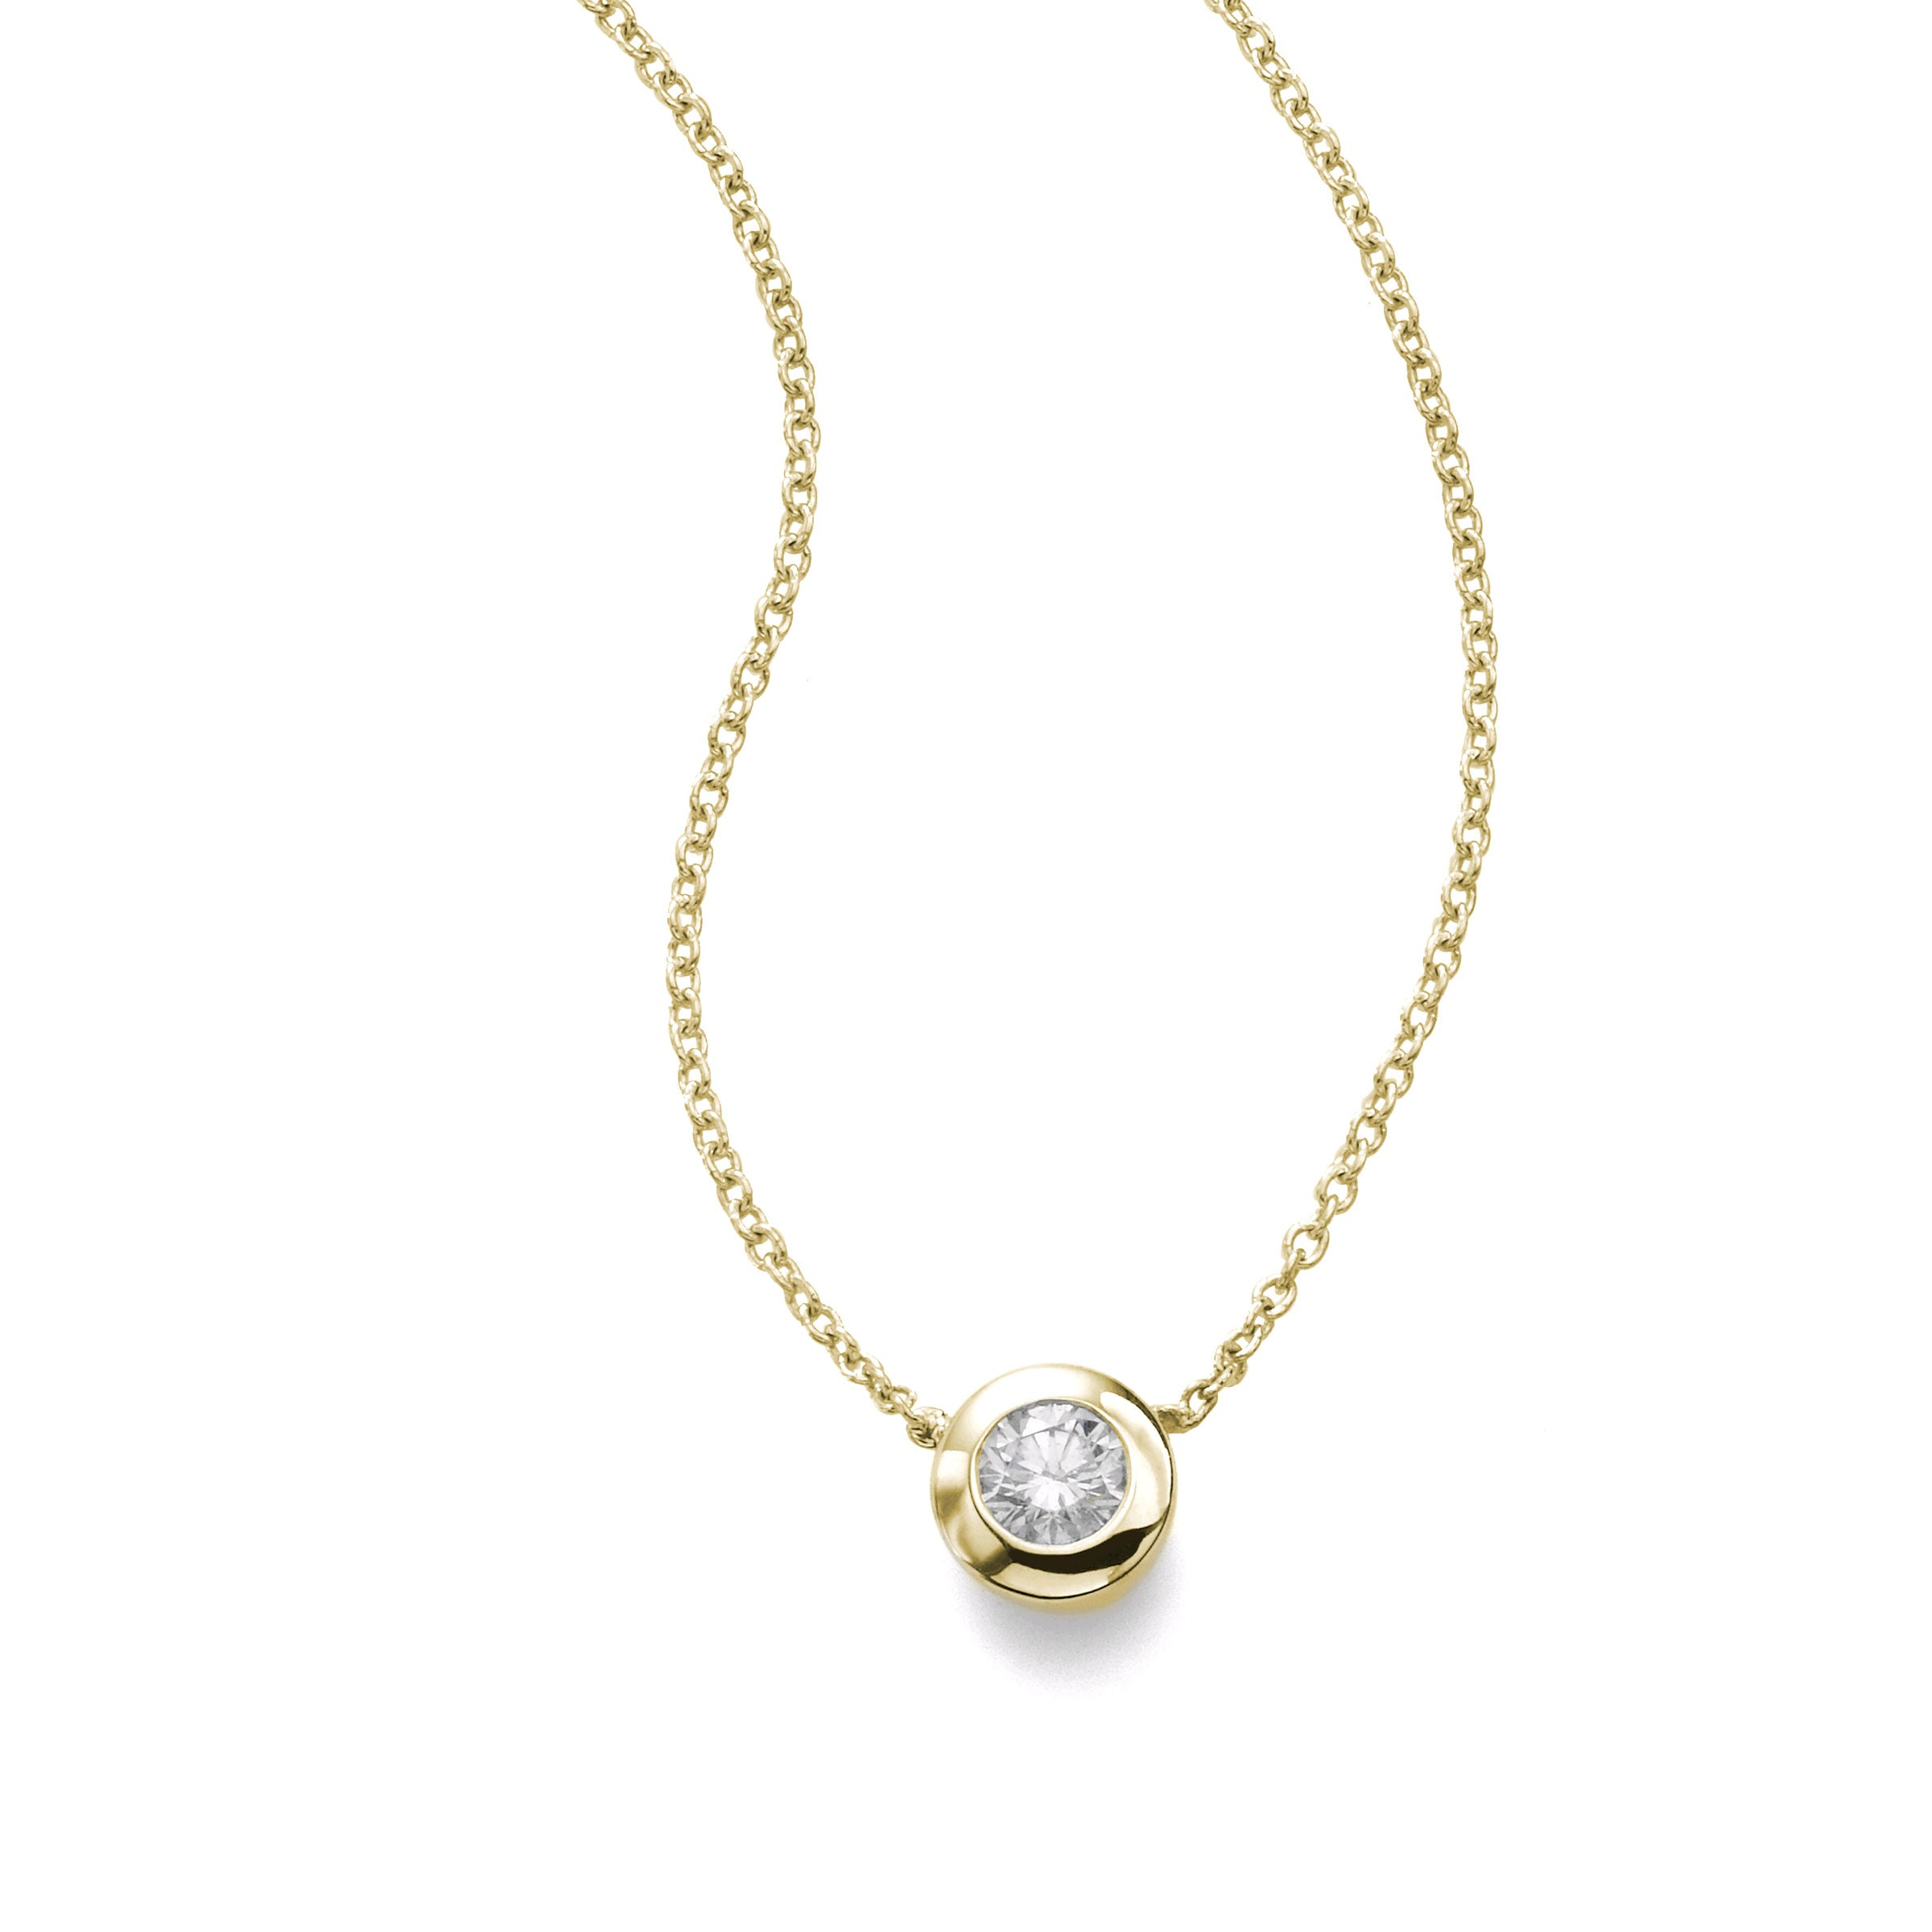 Single Diamond Pendant, Bezel Set, 14K Yellow Gold